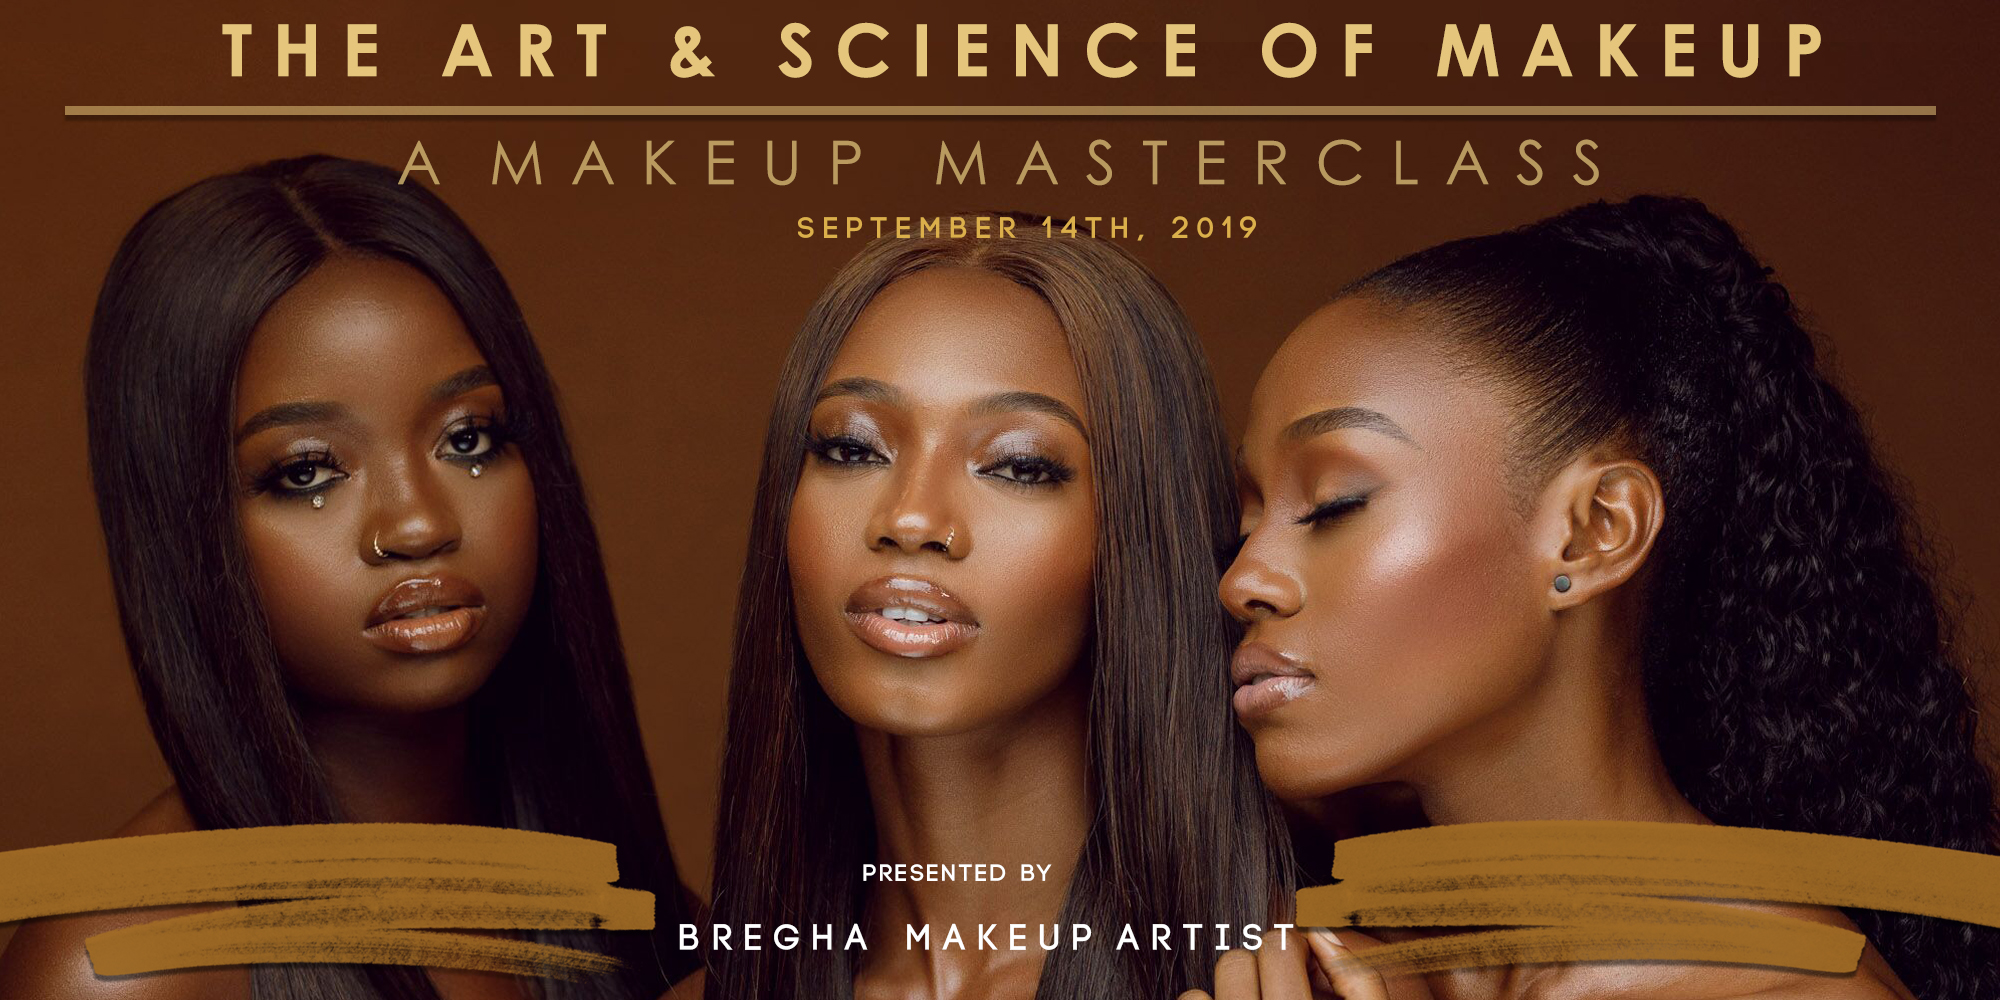 Get tickets to The Art & Science Of Makeup Masterclass by Bregha on